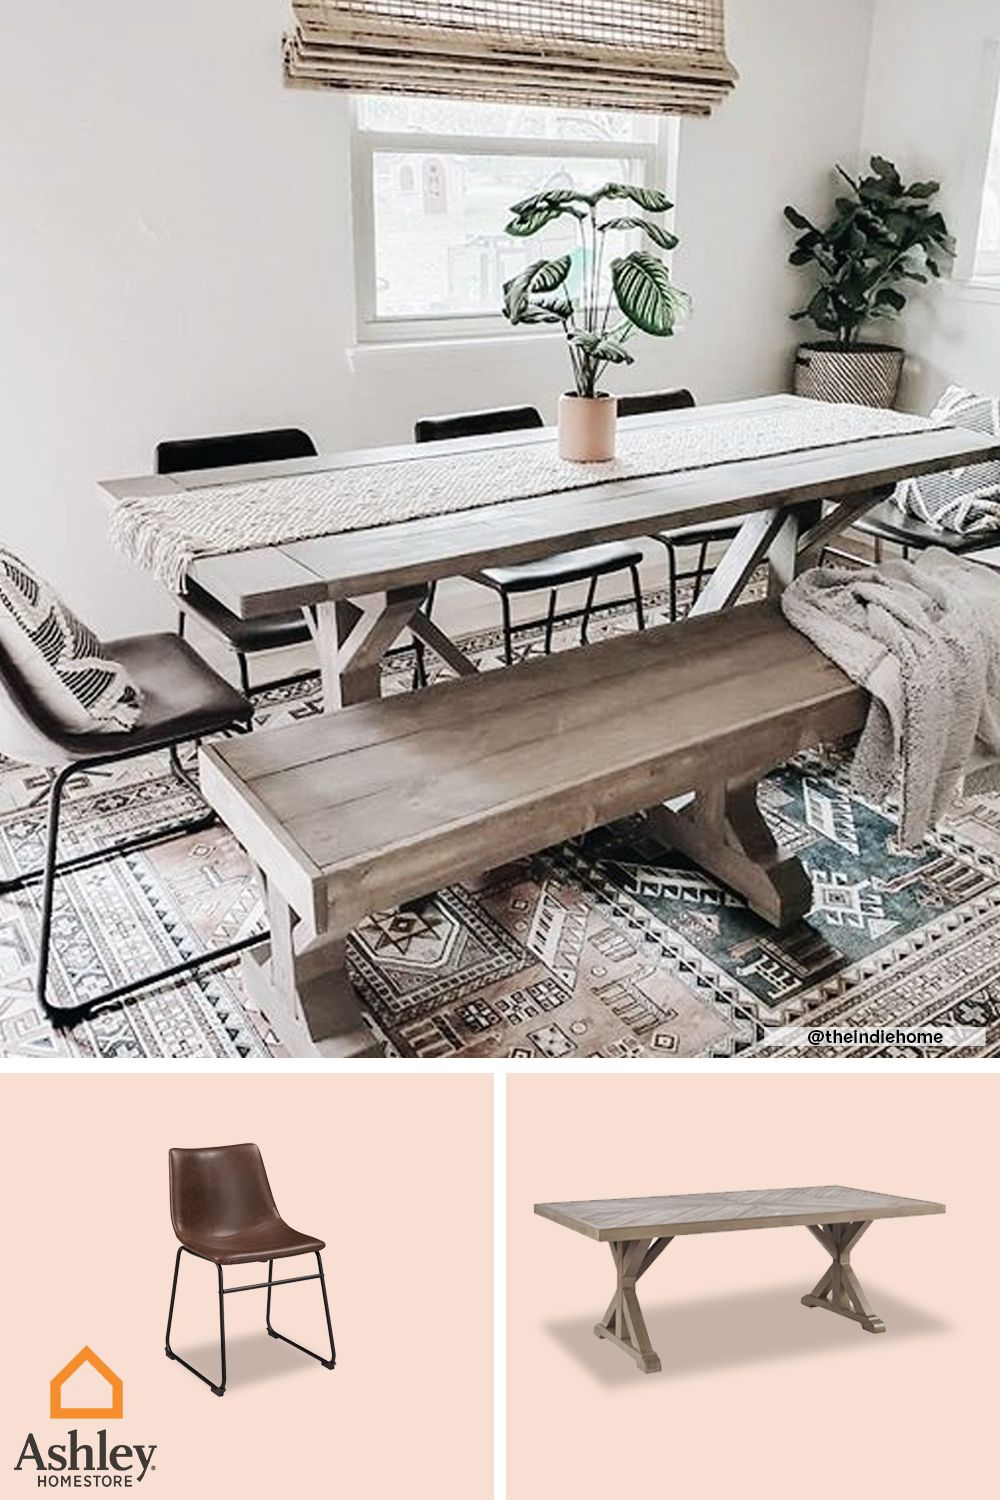 This seating brings a whole new meaning to